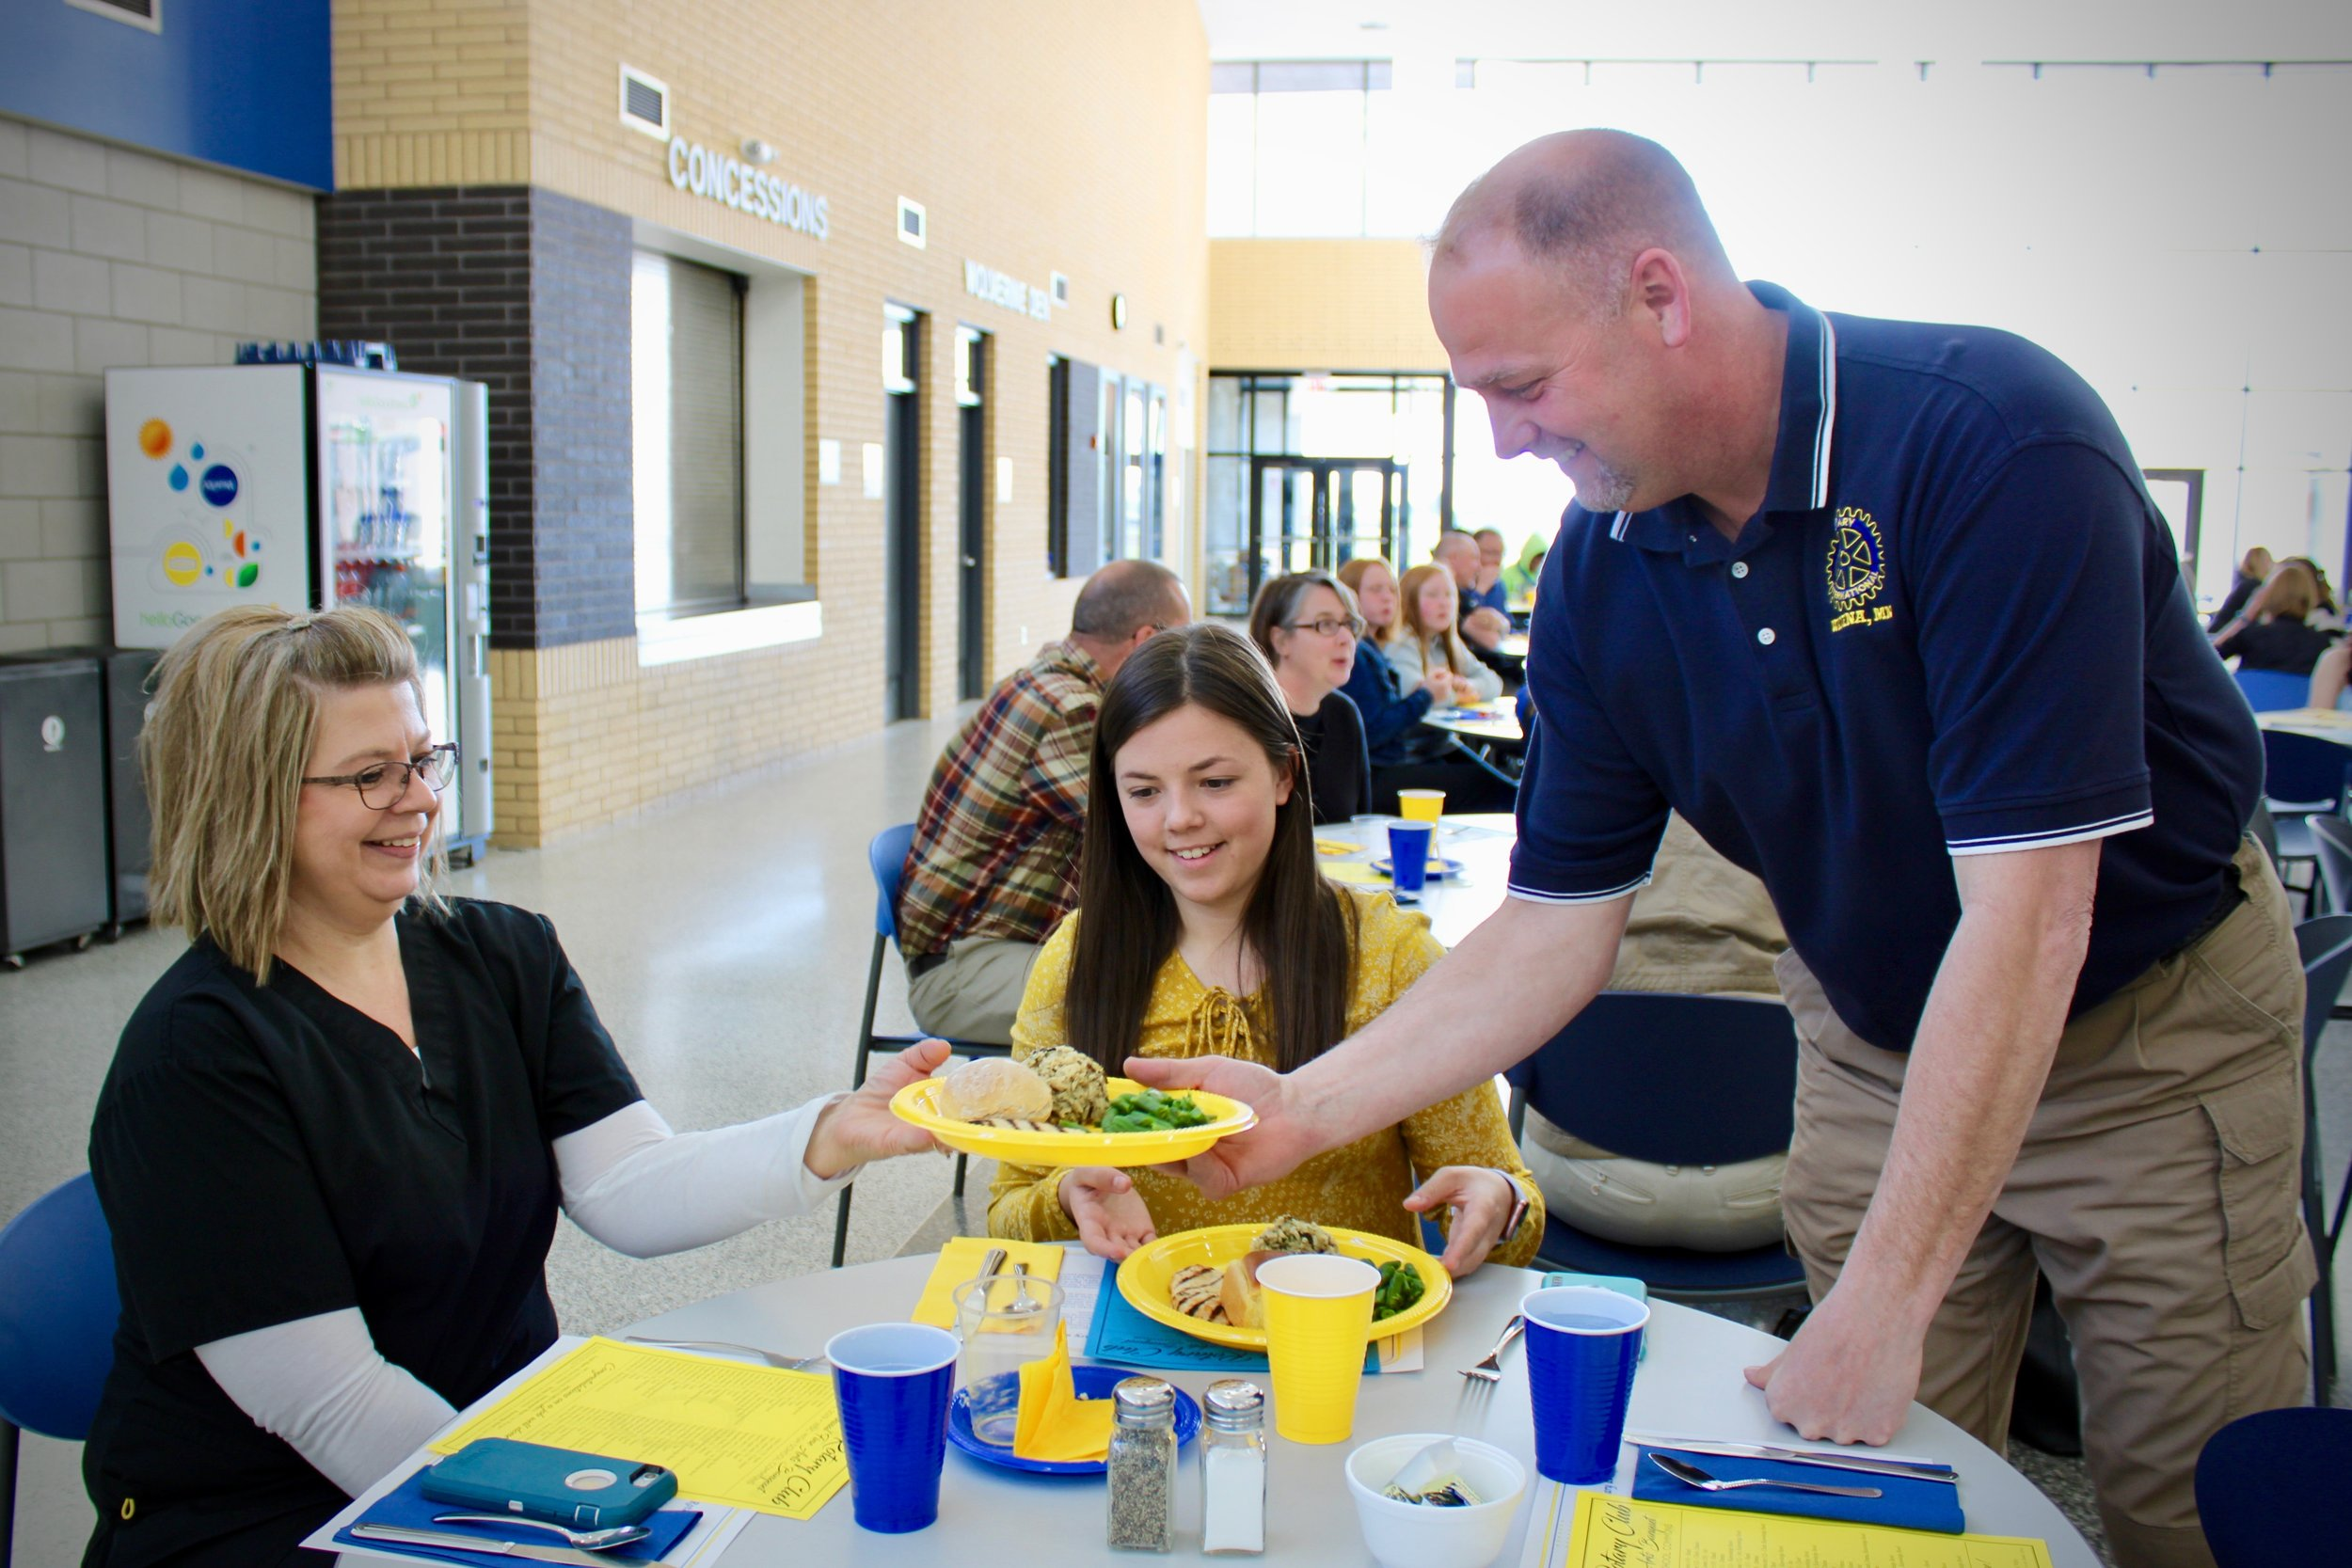 Wadena Rotarian Mike Carr Jr. serves Nancy Pierce and her daughter Lexi, a Junior honored that evening, a grilled chicken dinner at the 37th annual Wadena Rotary Club Fine Arts Banquet on May 6.